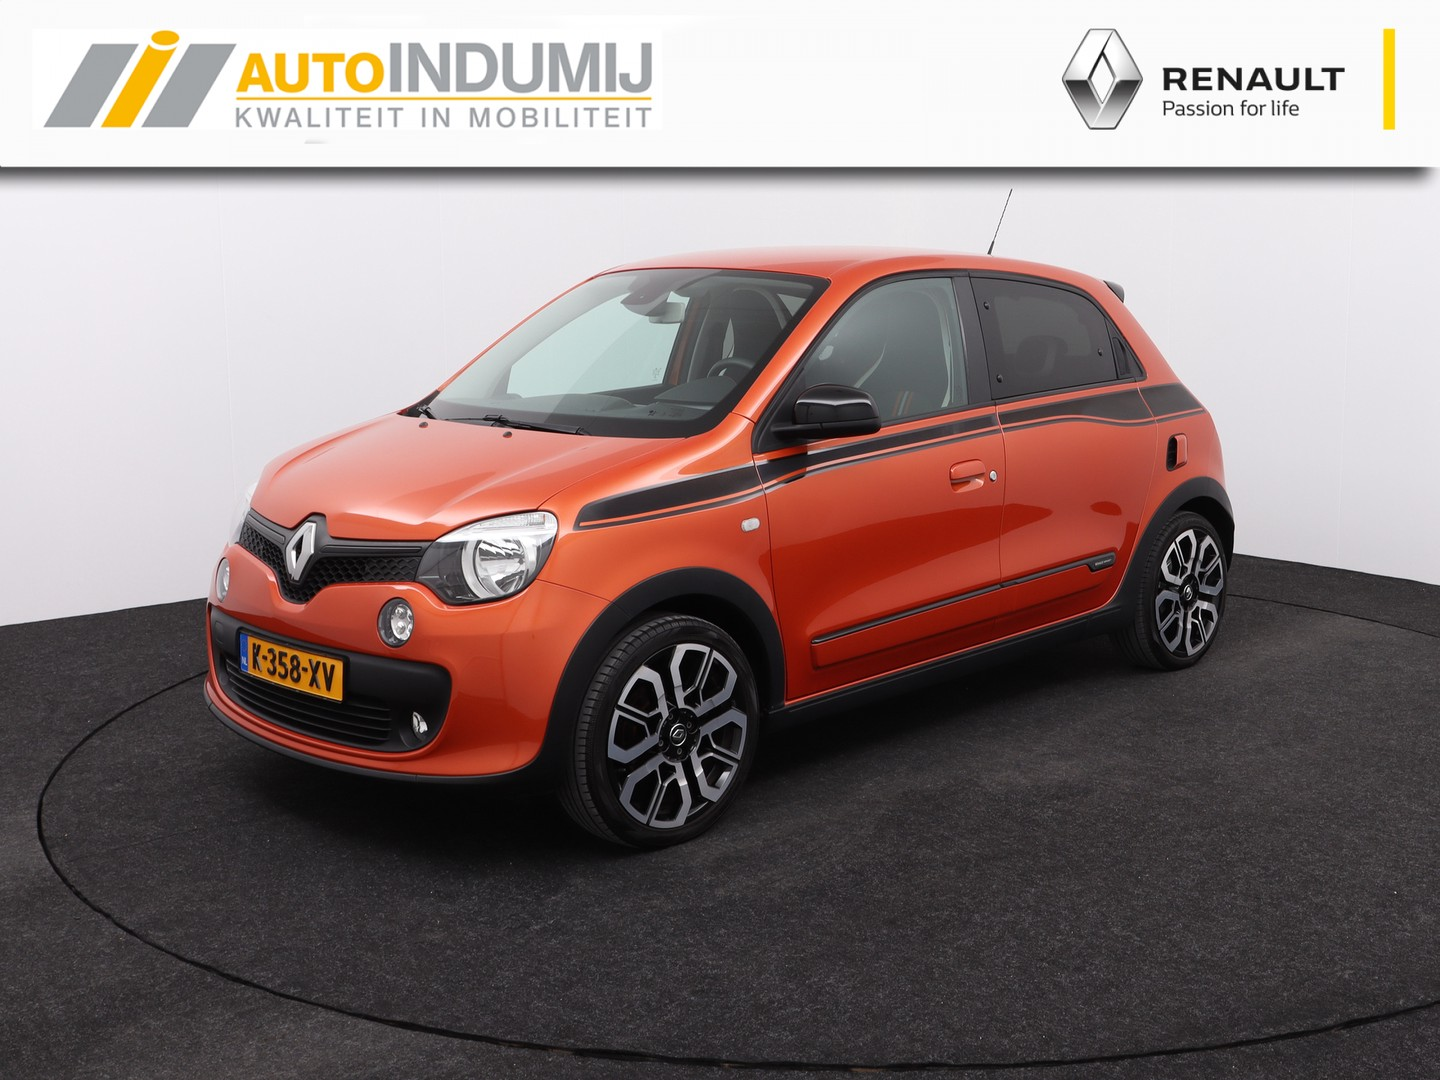 Renault Twingo Tce 110 gt / r-link / climaat control / unieke auto